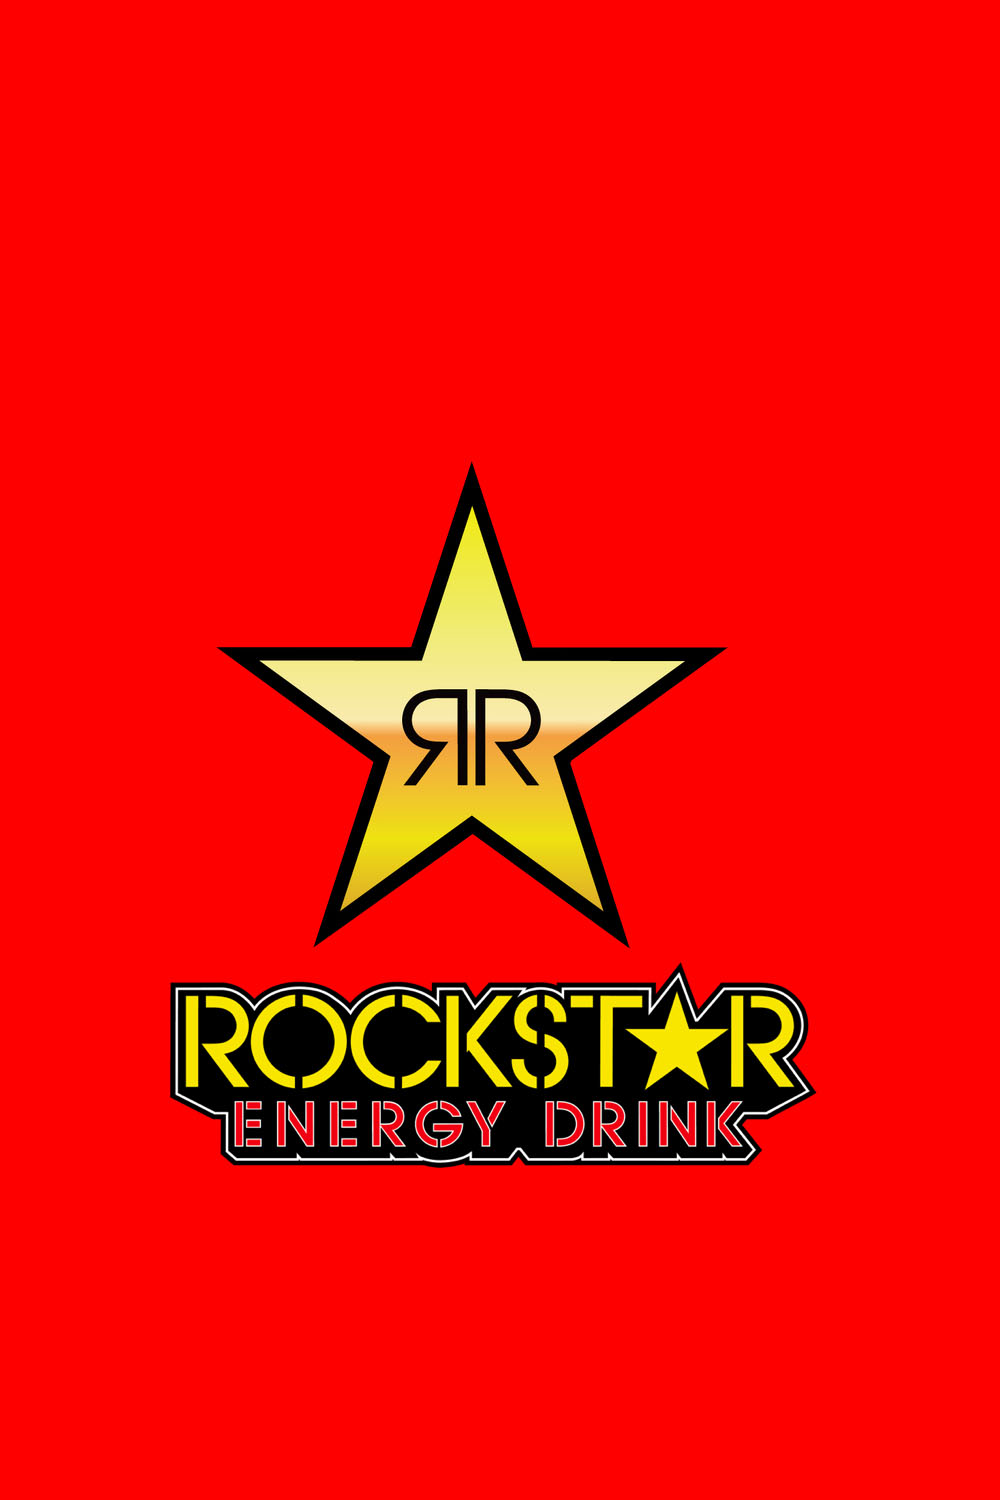 Rockstar Energy Drink Logo Wallpaper Images Pictures   Becuo 1000x1500